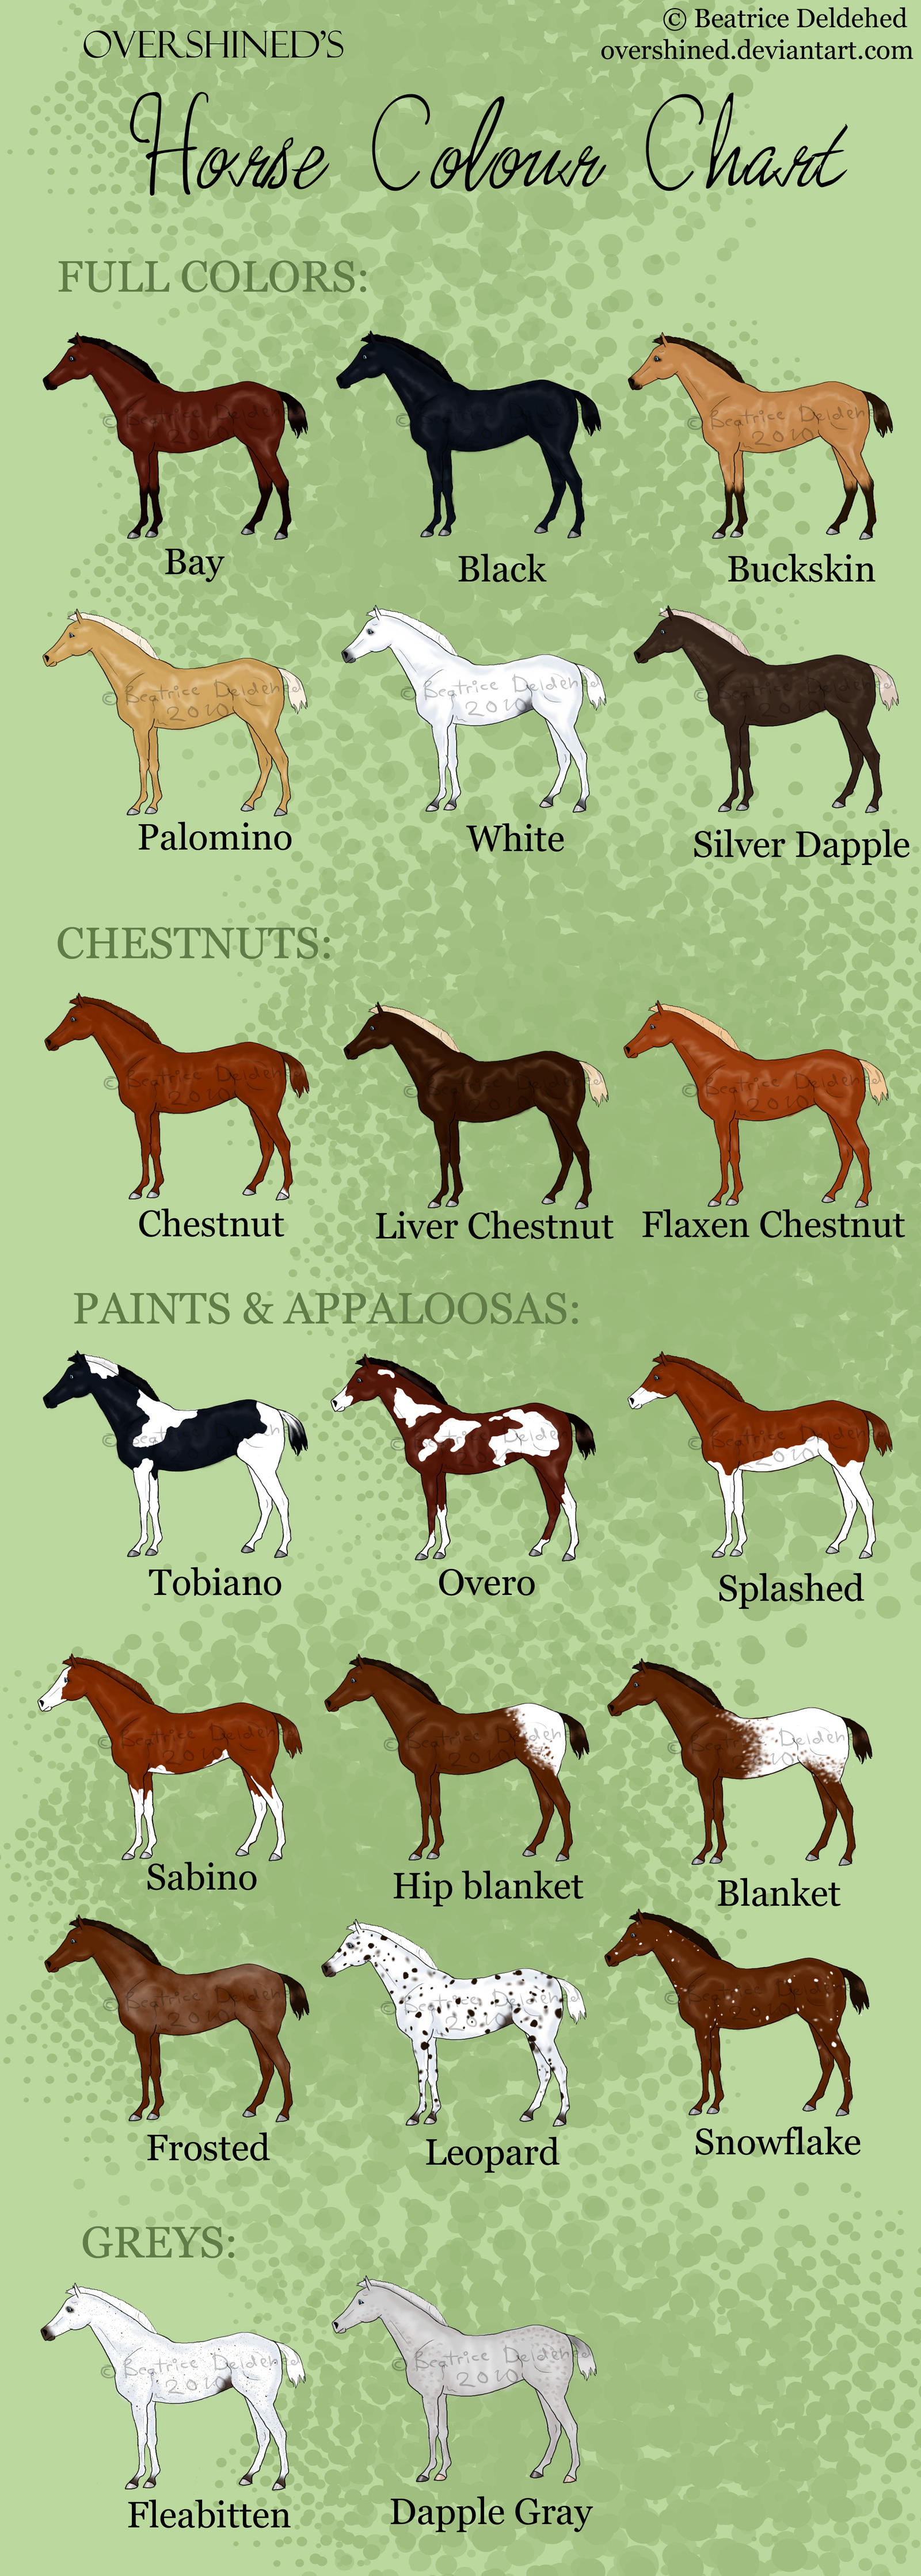 Horse Colour Chart by overshined